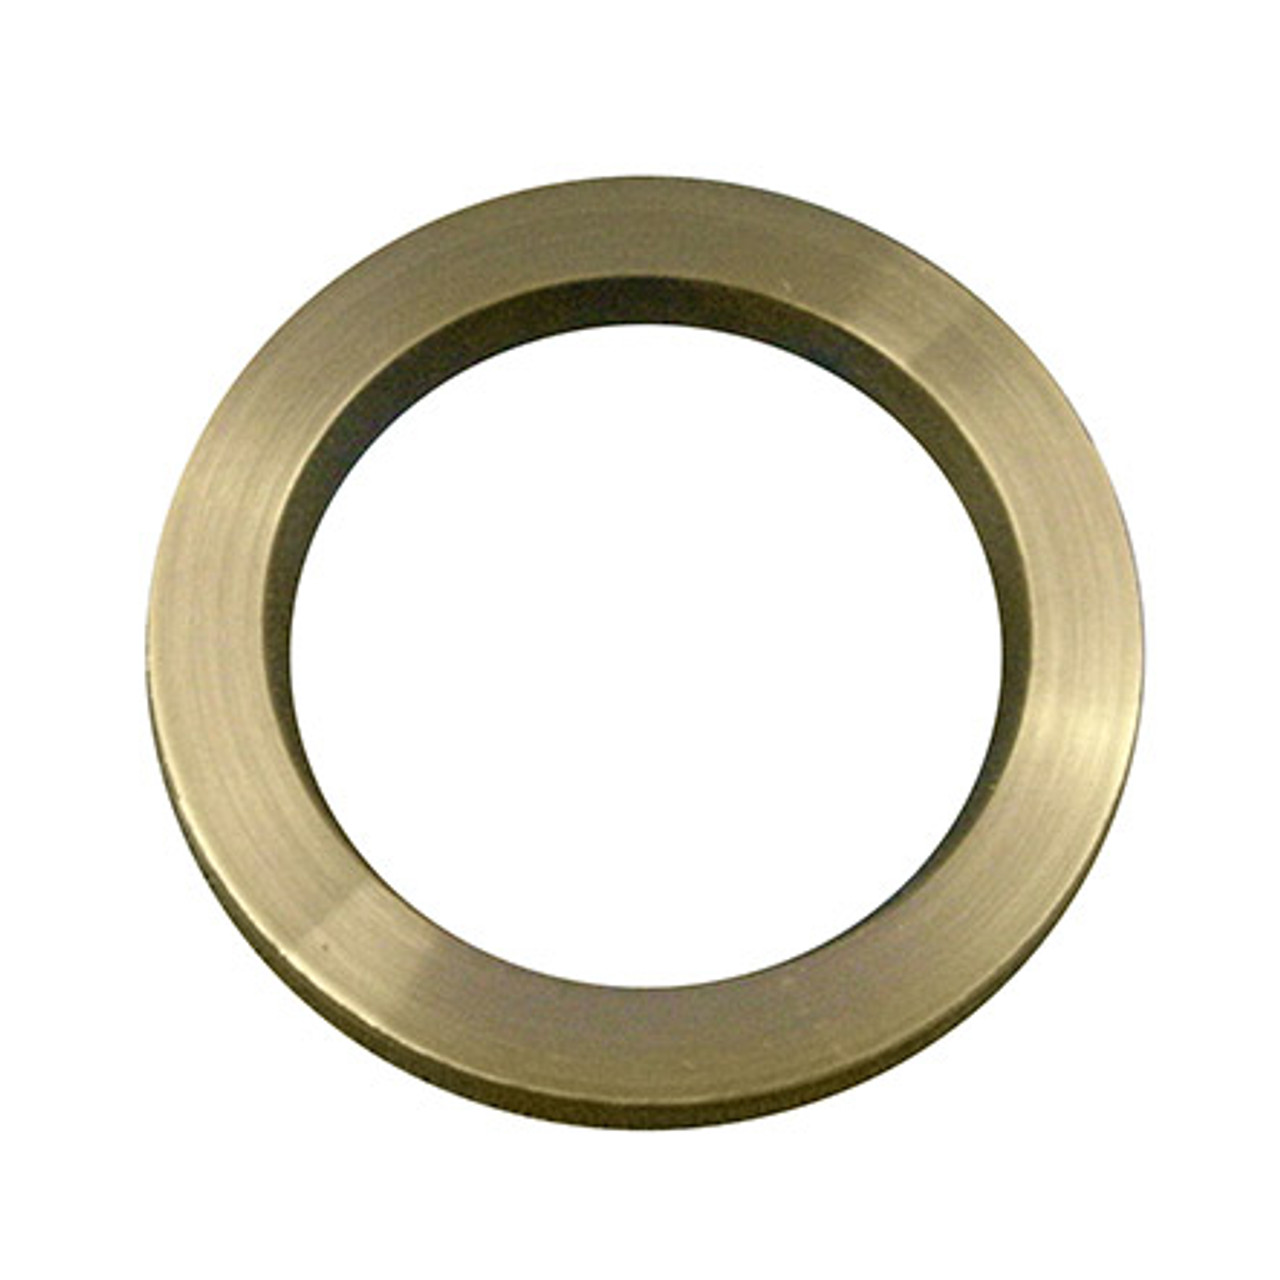 Cleveland Wheel & Brake 154-03200 Felt-Grease Seal | Part#: 154-03200 / by Cleveland Wheel & Brake  FAA Export 8130-3 Grease Felt Seal for use on 5.00-5 Wheel Assembly. 2 per Wheel Assembly  Parker Part Number : 154-03200 Component type : Brake/ Wheel/ Hydraulic/Kit Type : Wheel Assembly Appearance : Molded - Inner Single Lip Seal